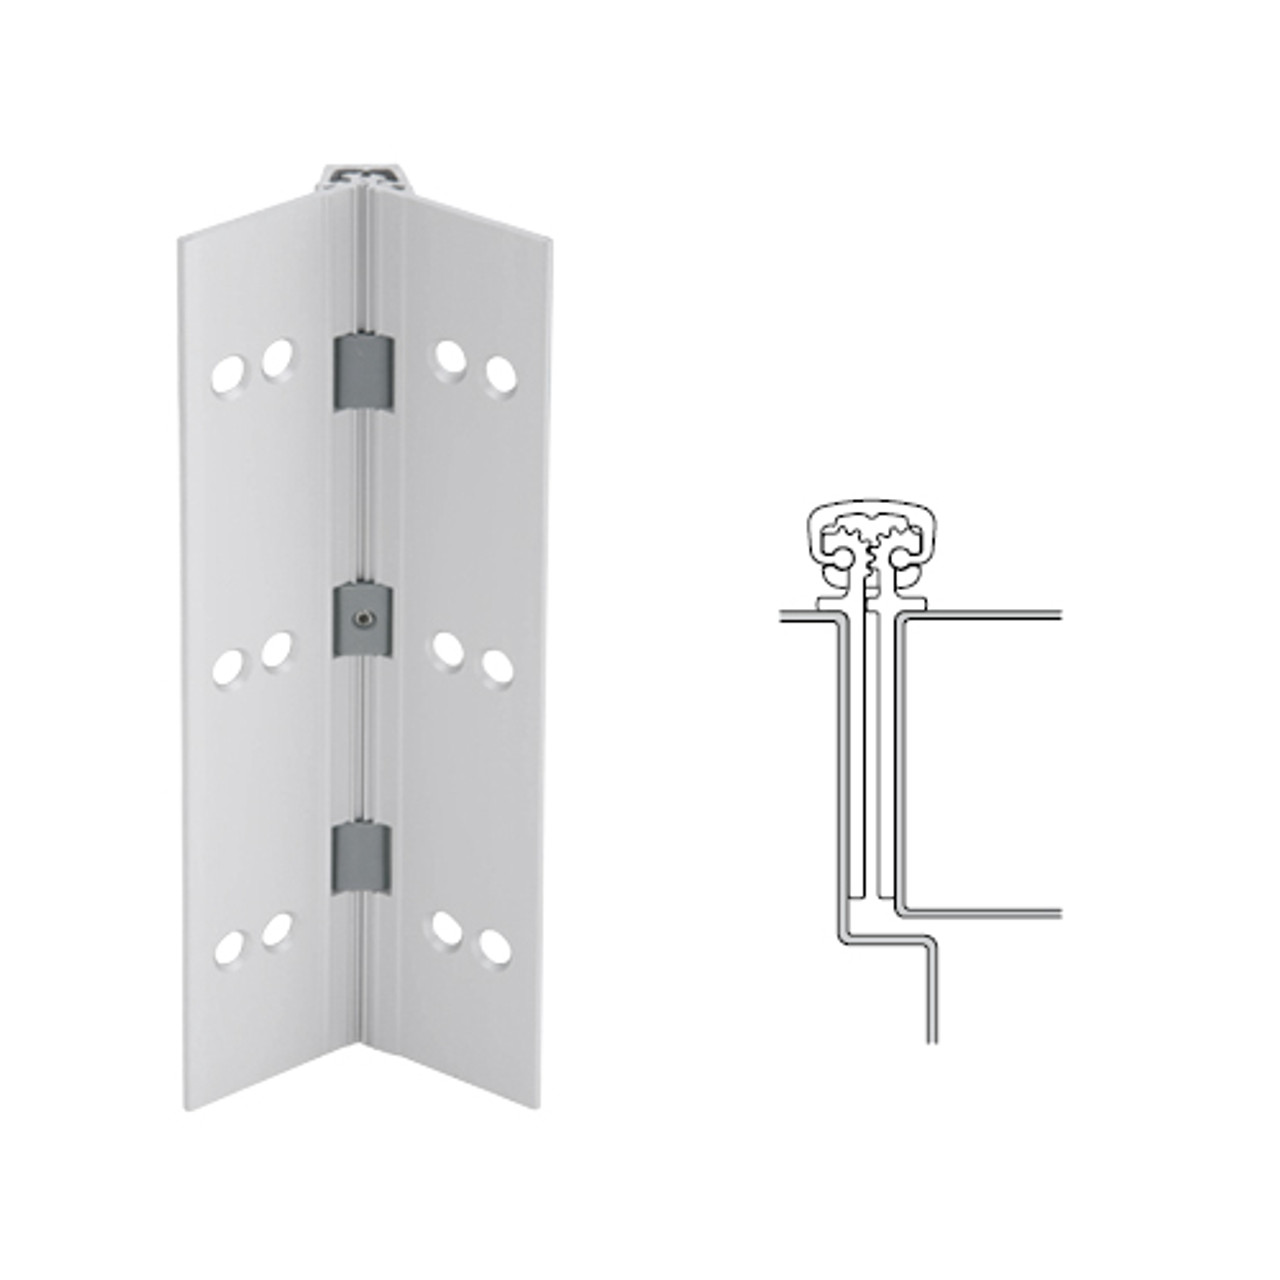 027XY-US28-120-EPT IVES Full Mortise Continuous Geared Hinges with Electrical Power Transfer Prep in Satin Aluminum